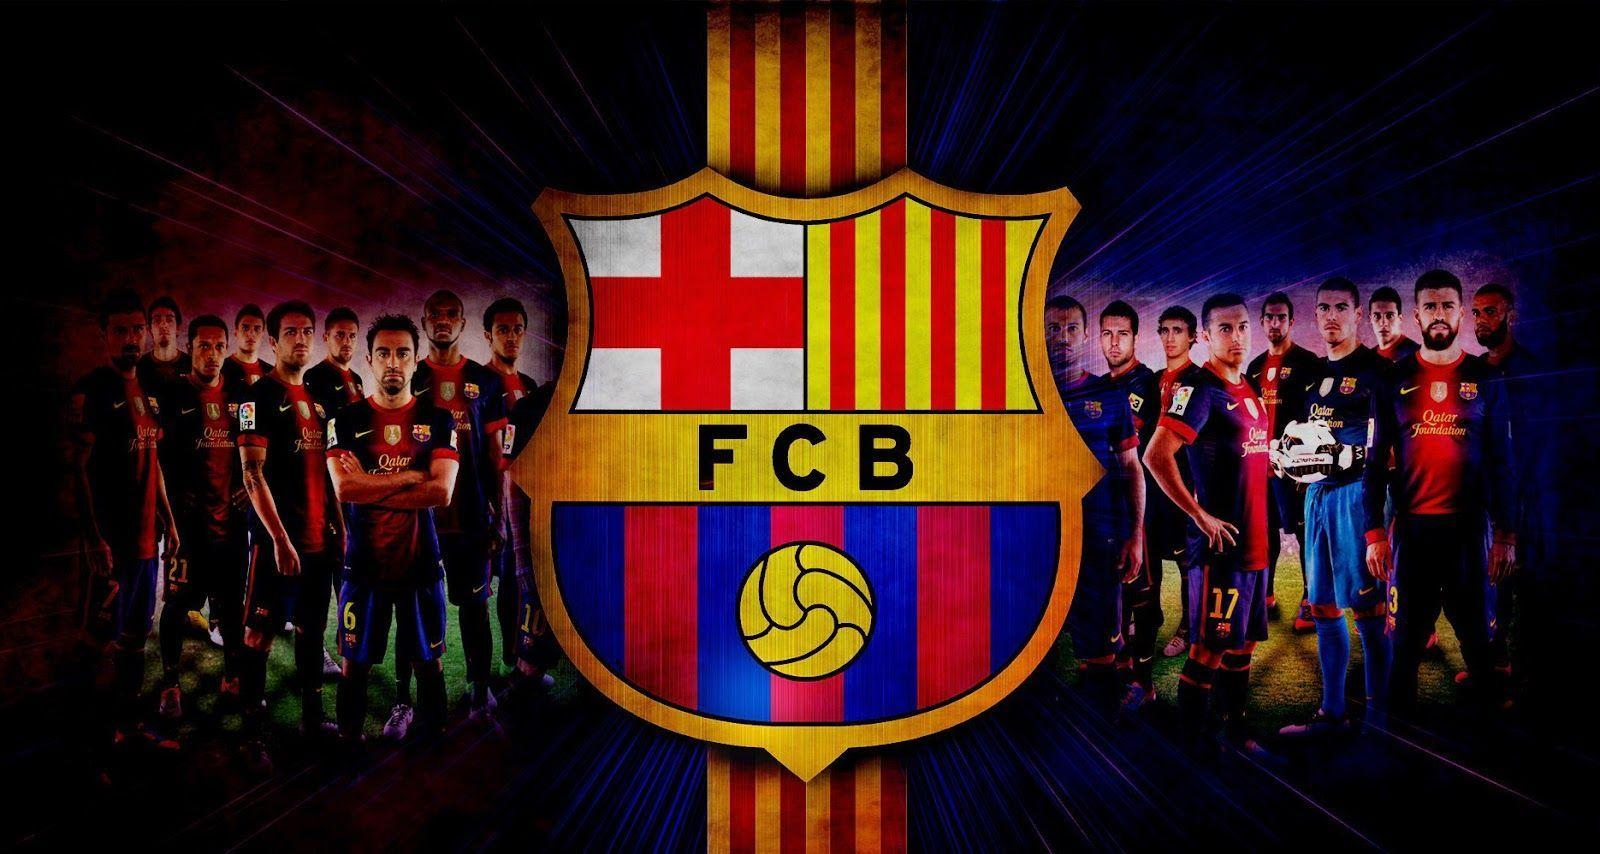 Wallpapers F C Barcelona Terbaru Wallpaper Cave